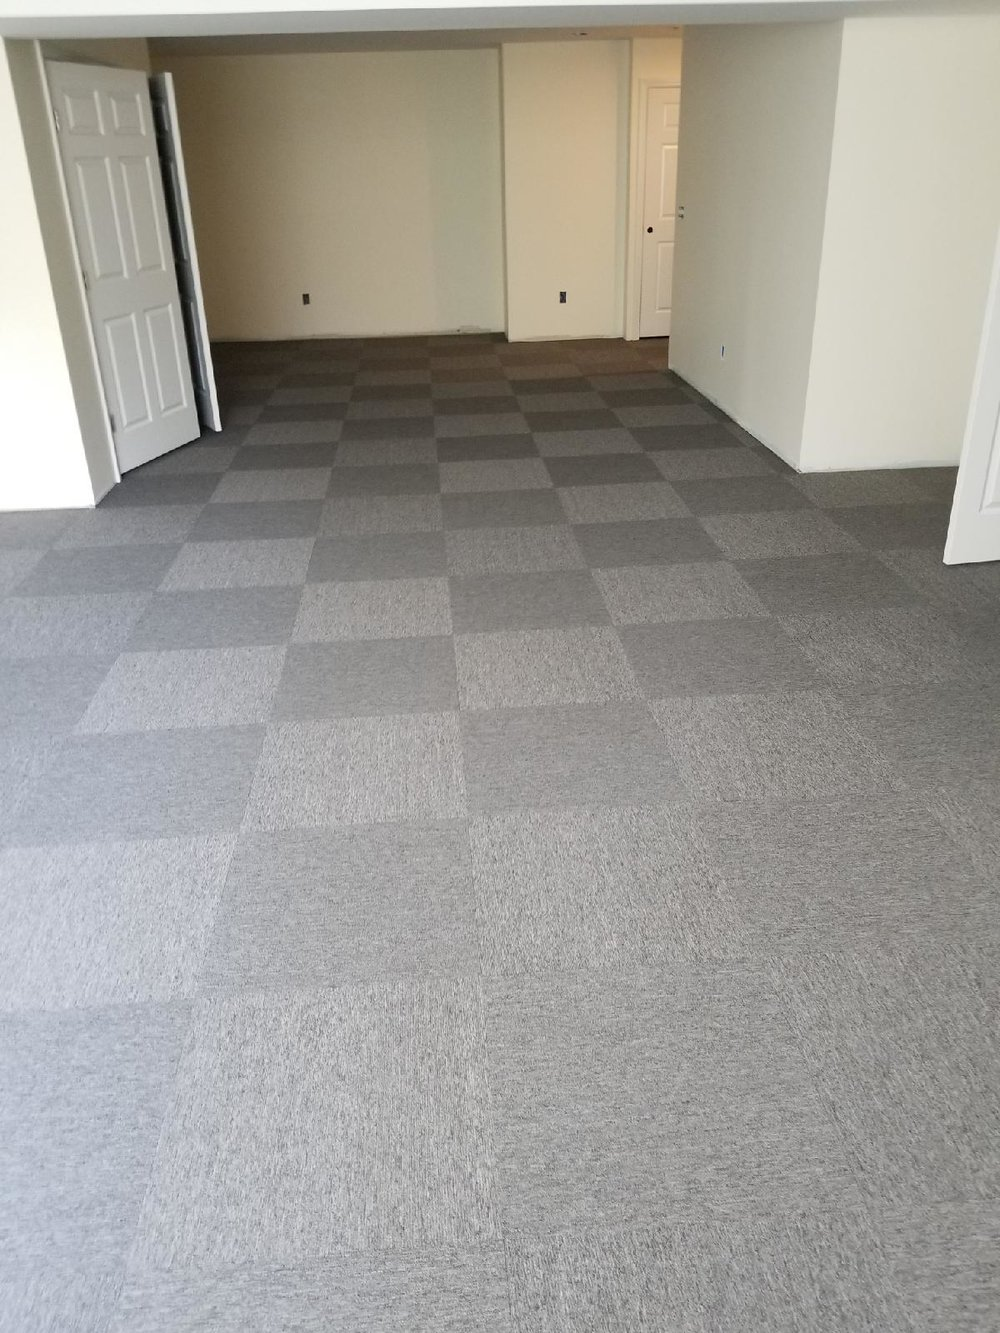 these 2' x 2' carpet tiles were recently installed for a customer in wallingford, ct. carpet tiles offer the utmost DURABILITY and were installed with a fun quarter-turn rotation giving it a great checkered pattern.